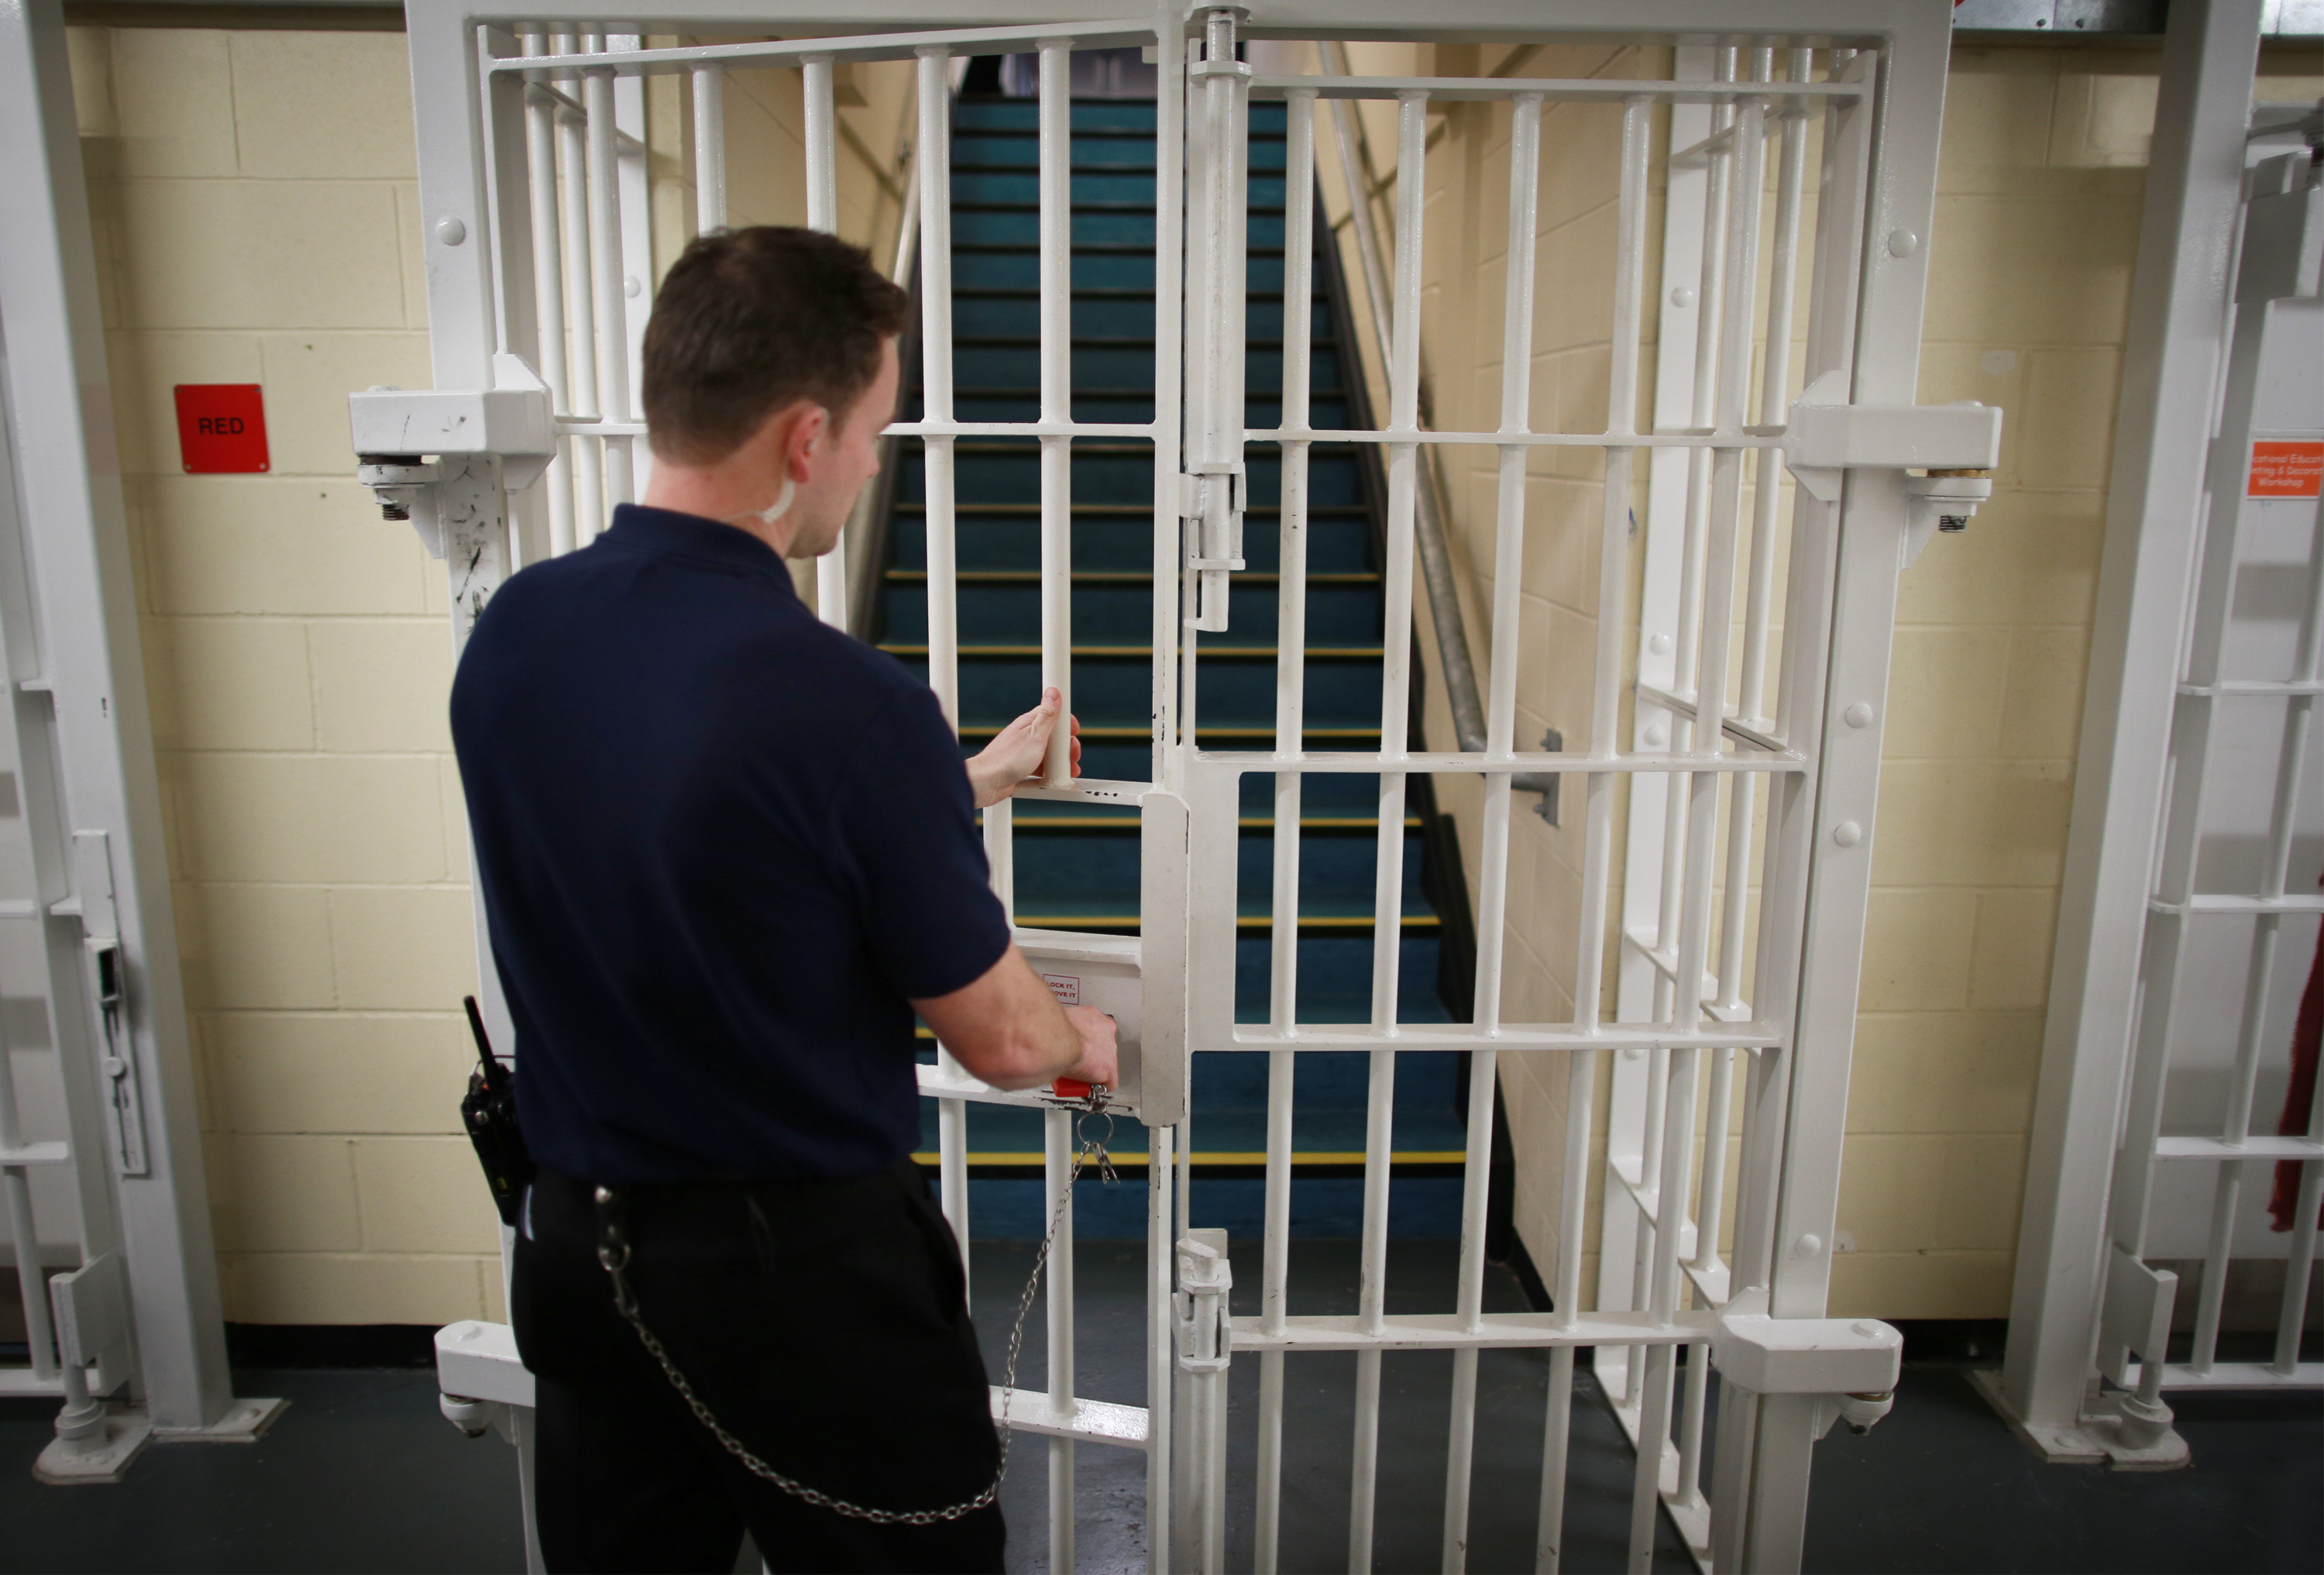 A prison guard closes a door in a prison